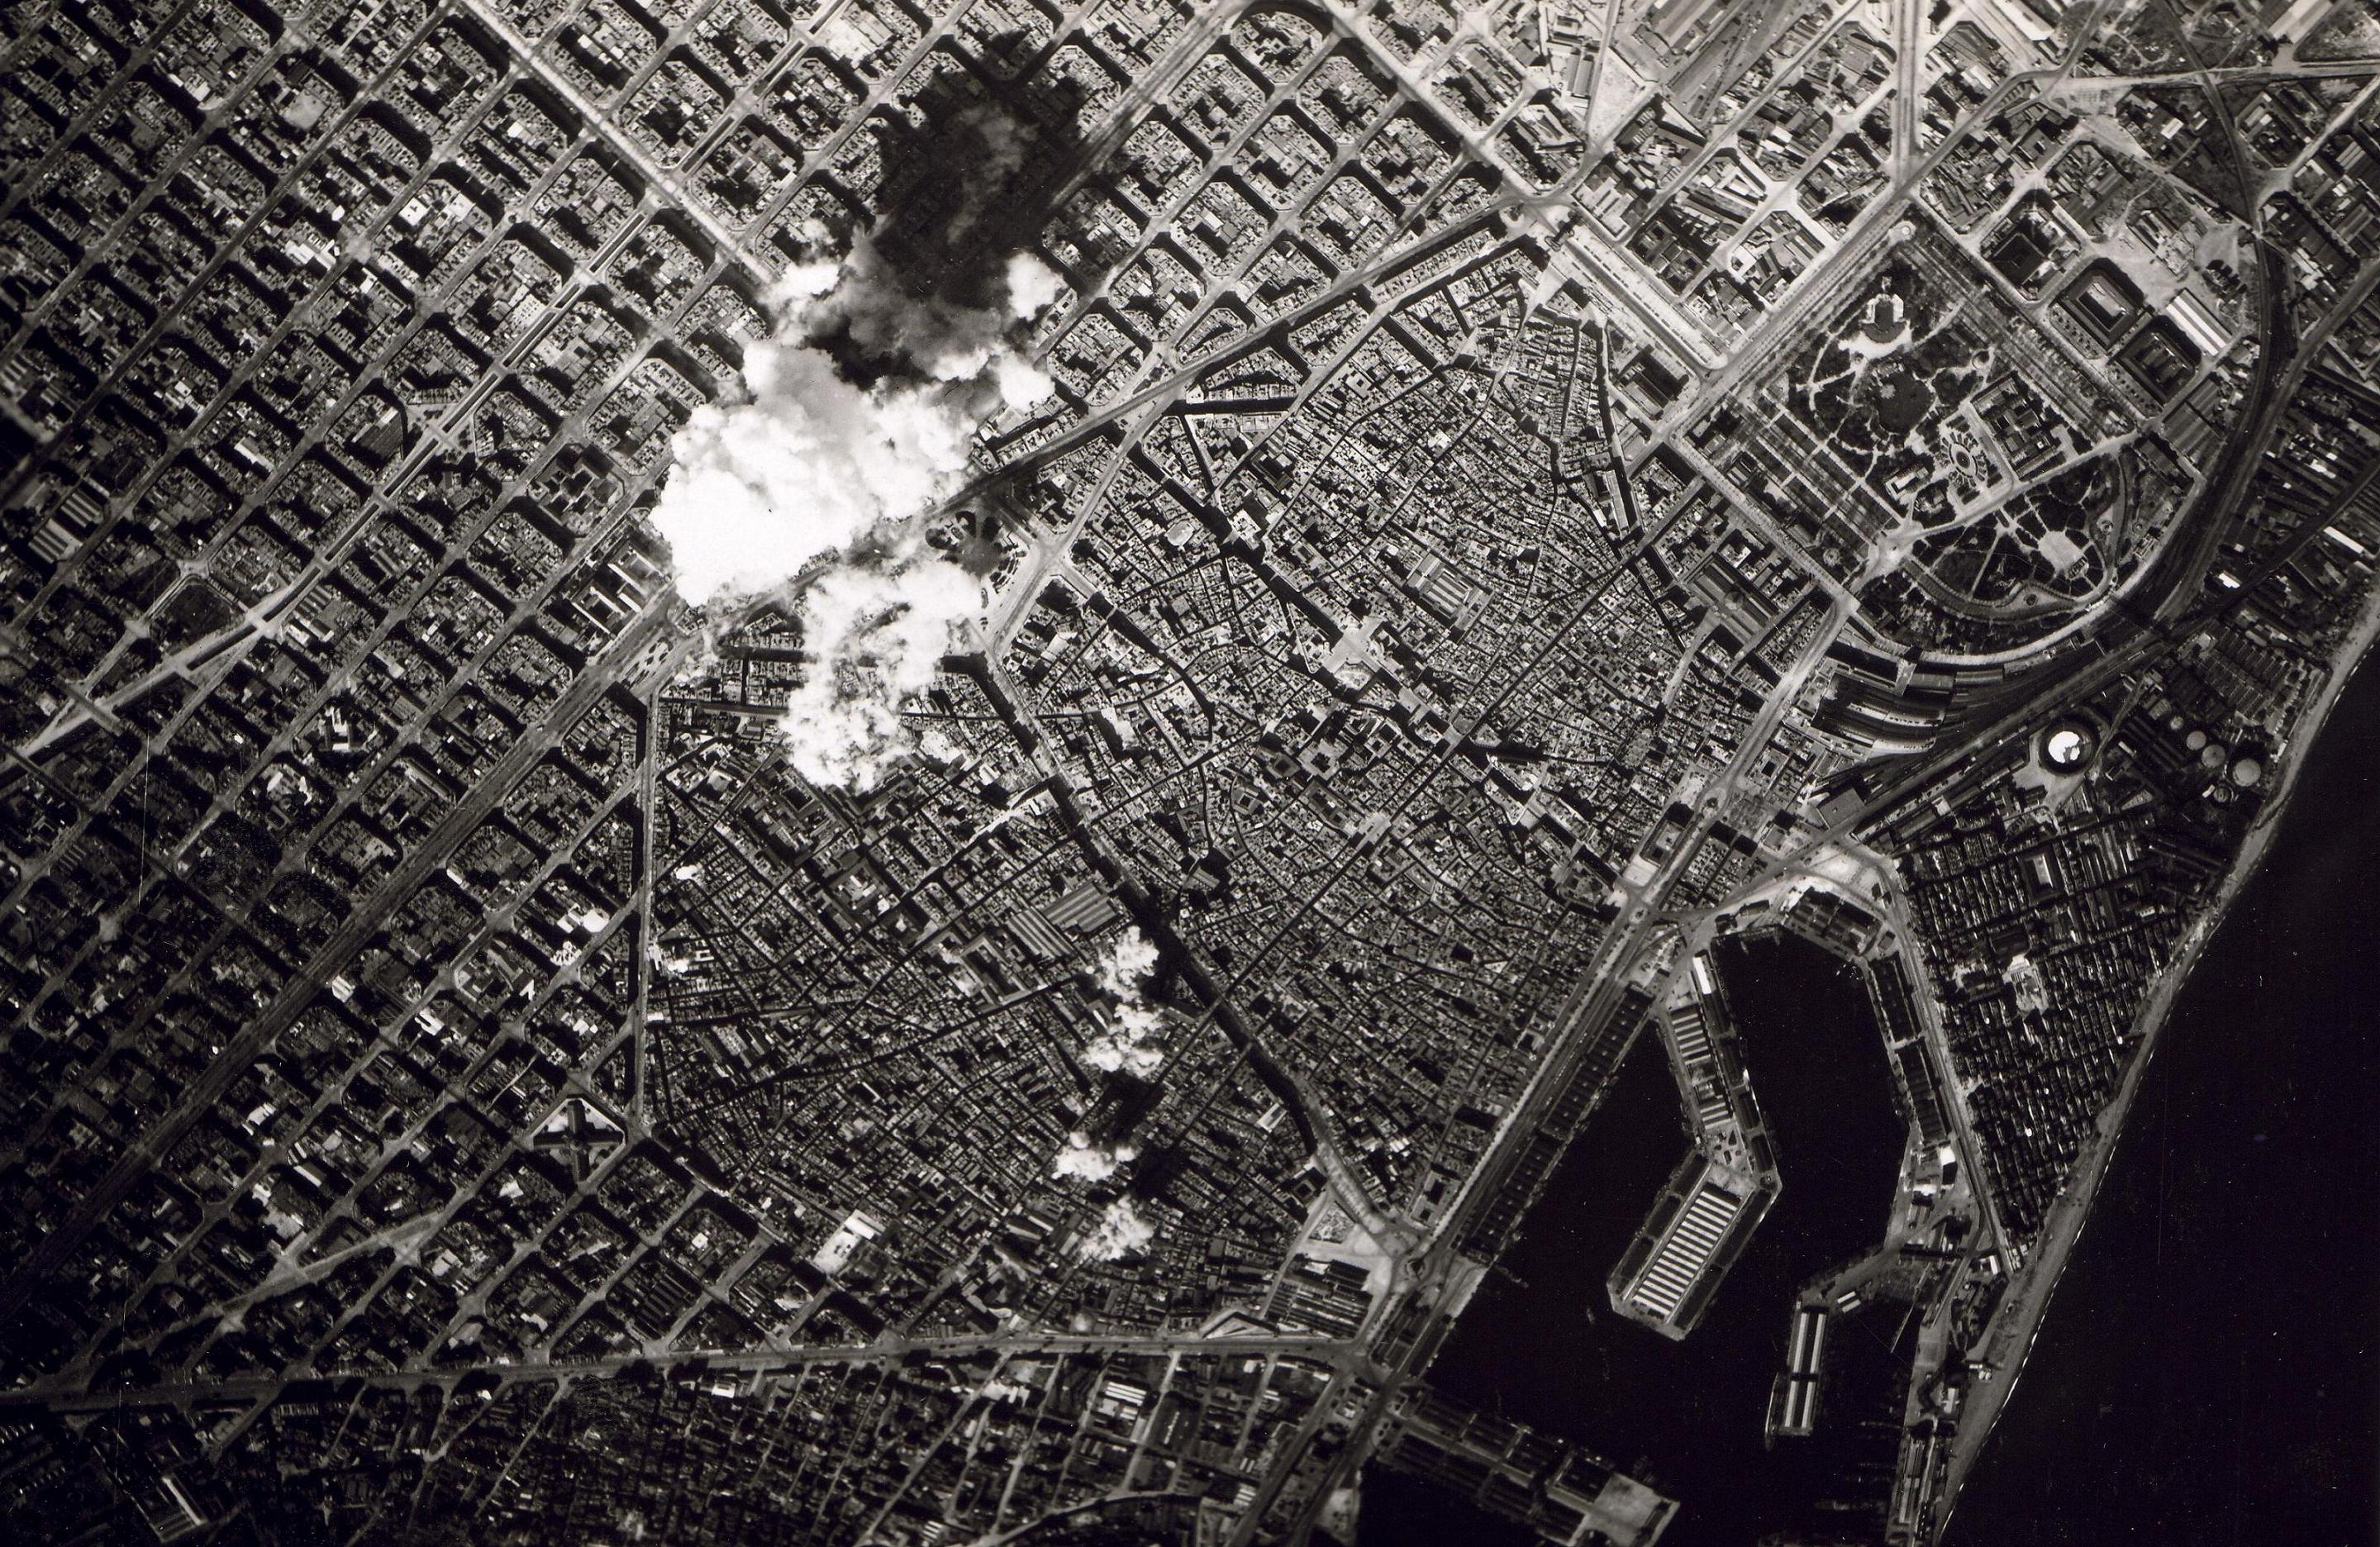 Bombings in Barcelona in 1938